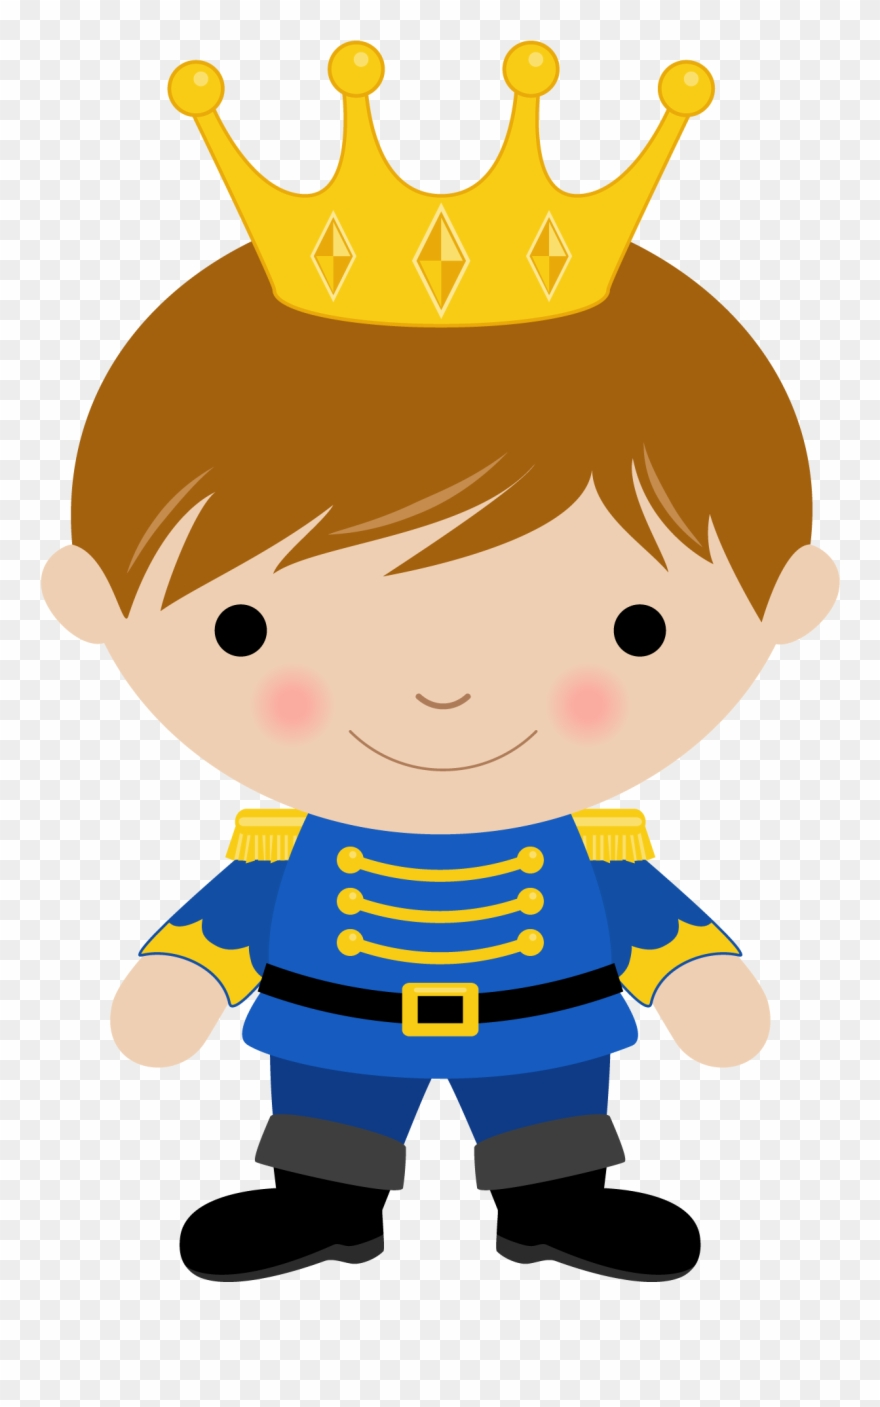 medium resolution of printable crafts printables prince crown prince prince clipart png transparent png